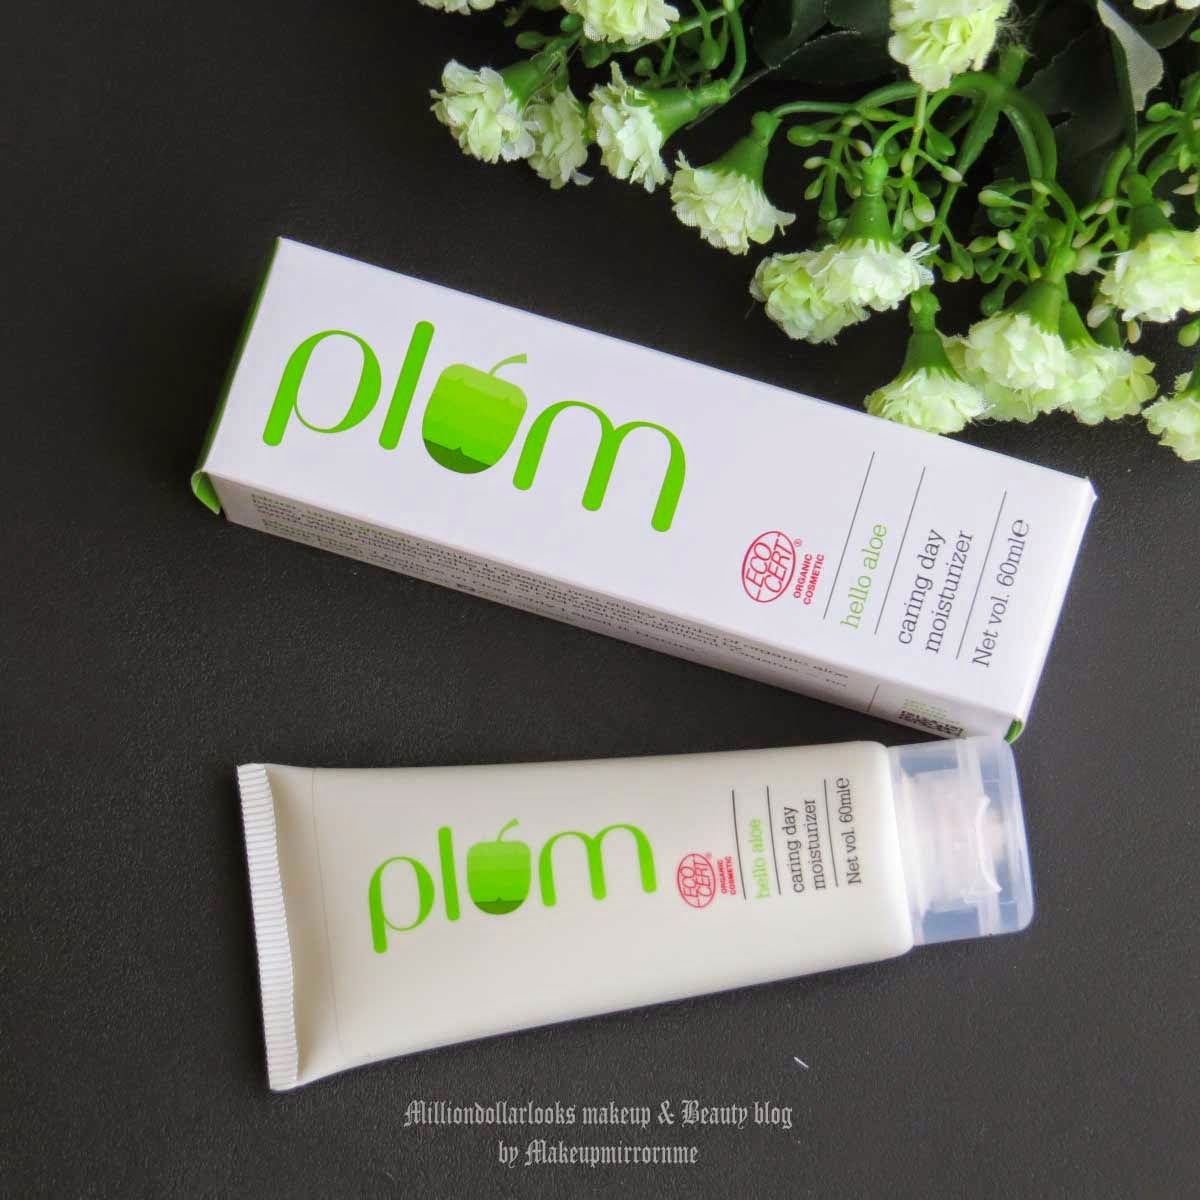 Plum Hello Aloe Caring Day Moisturizer Review & Pictures, Indian beauty blogger, Plum goodness products review, Plum goodness skincare range, Indian beauty blog, Indian makeup and beauty blog, Day moisturiser, Moisturiser for dry and sensitive skin type, Best organic skincare brands available in India, Certified organic skincare brand, Top indian beauty blogs, No shine formula, Skin care products, CTM routine for dry skin